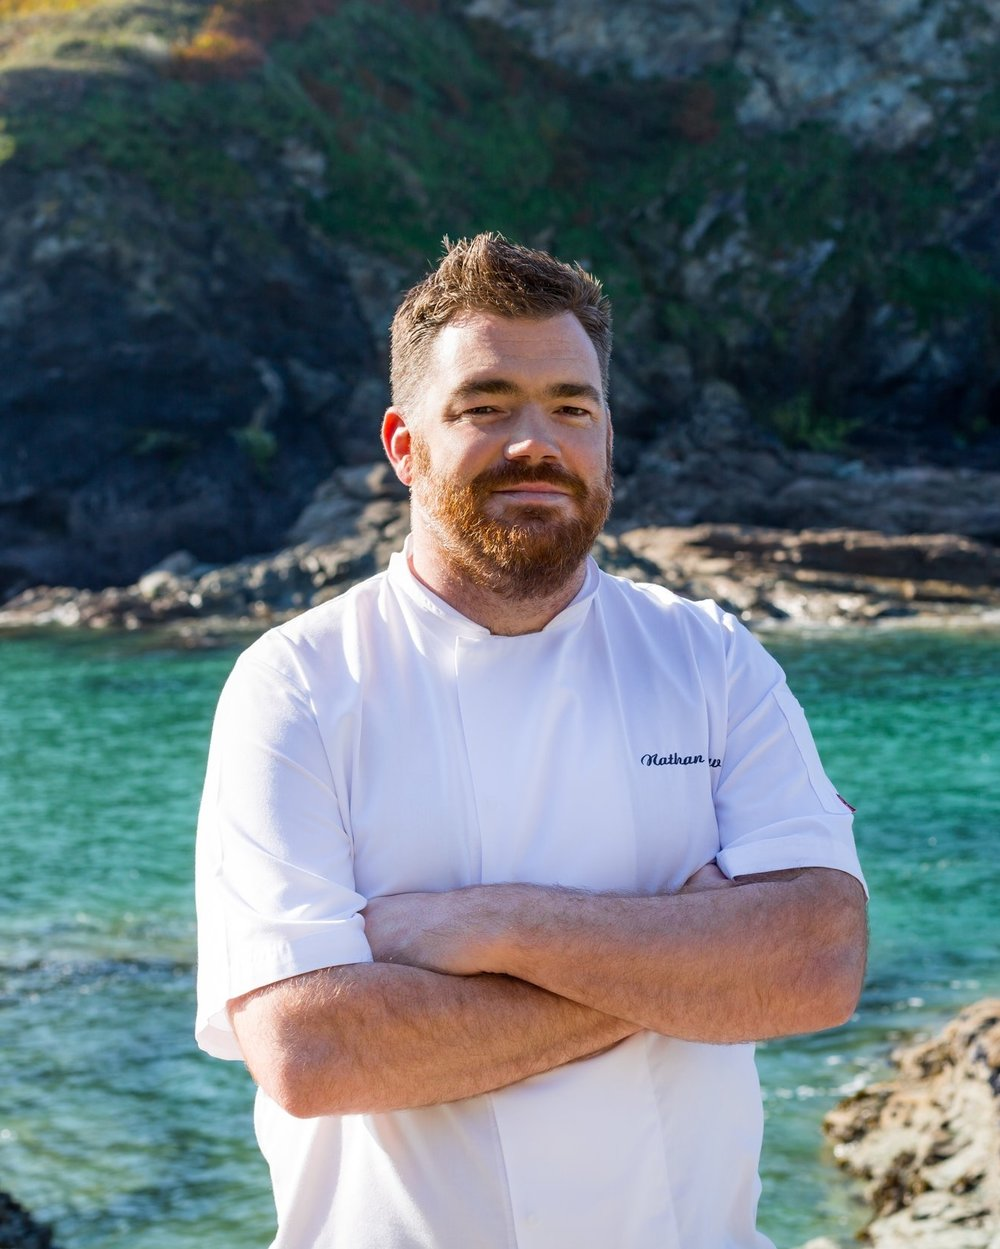 Nathan Outlaw   . Originally, from Kent, Nathan now calls Cornwall home and is a proud ambassador of all things Cornish. Having attending Thanet College in Broadstairs, his love for seafood cookery ignited when he came to Cornwall as a young chef to work with Rick Stein.   Nathan has two restaurants and a pub in Cornwall, Restaurant Nathan Outlaw and Outlaw's Fish Kitchen in Port Isaac and The Mariners public house in Rock.   Further afield are Outlaw's at The Capital Hotel, Knightsbridge and his first venue outside the UK, 'Nathan Outlaw at Al Mahara', in the world famous Burj Al Arab Jumeirah in Dubai.     Nathan's interest in education and training saw him join forces with Cornwall College to open Academy Nathan Outlaw where enhanced learning opportunities are offered to young  Chefs and Front of House.  He is also in demand at industry conferences where his expertise is valued by those training and by experienced chefs.   Nathan has written several successful cookery books, all except one focussing on seafood cookery.     His easy manner, enthusiasm and obvious passion for his work make him a hit with audiences of all ages at food festivals and he regularly appears on TV programmes like 'Saturday Kitchen' and 'Masterchef Professionals'.